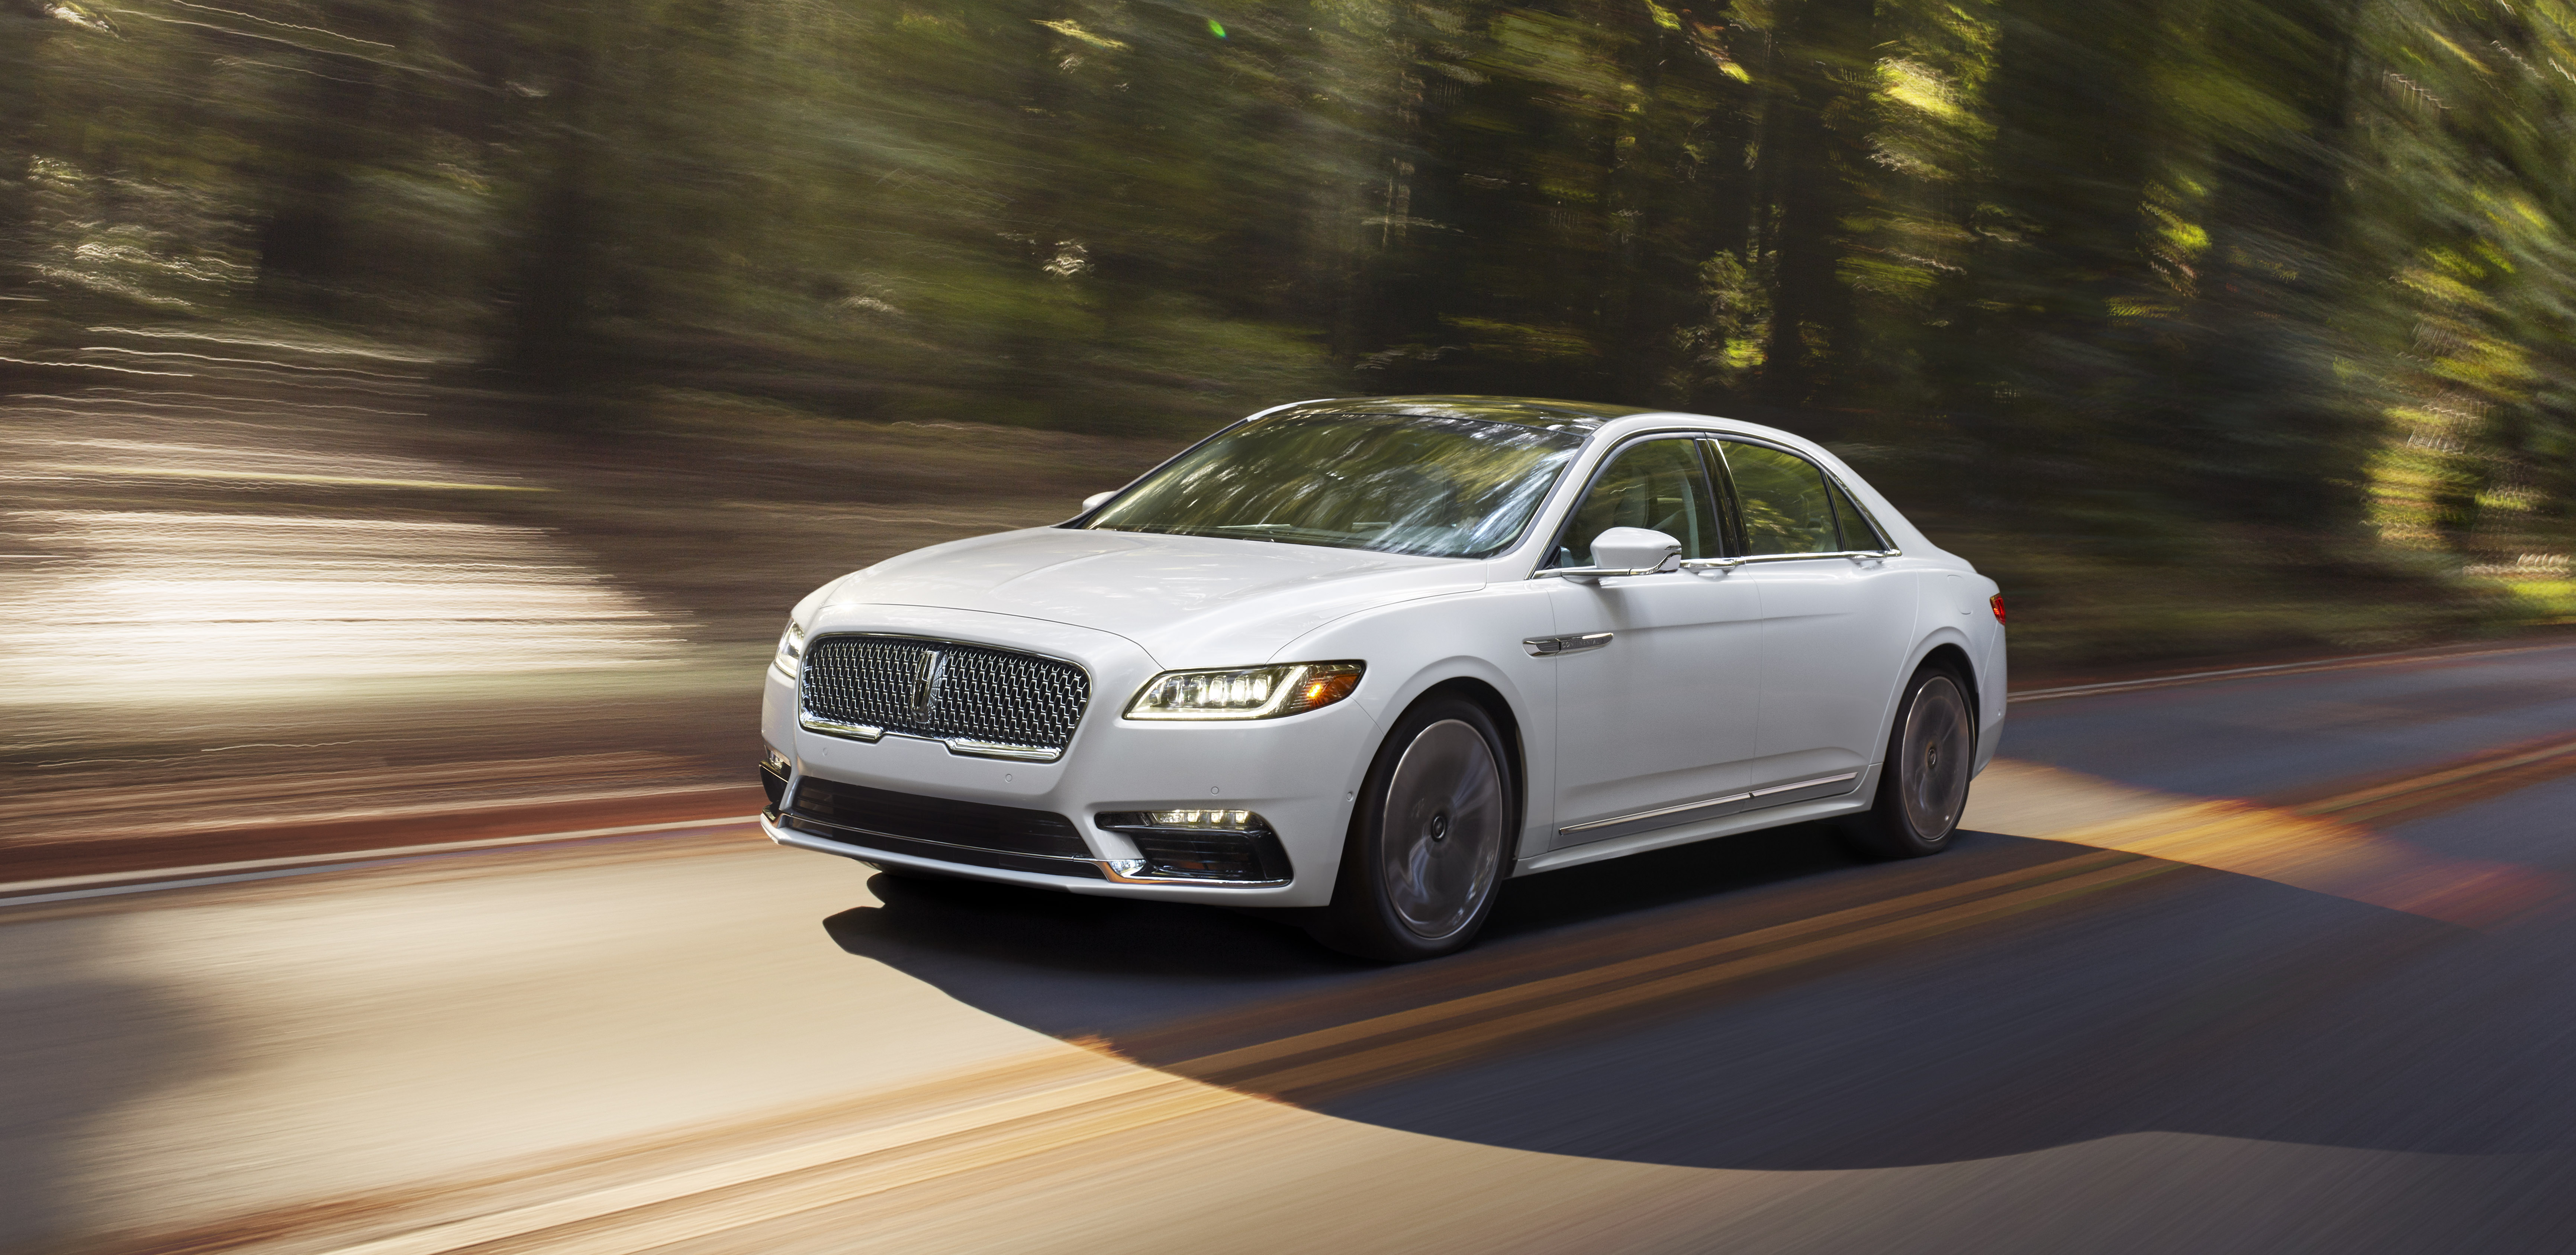 The all-new Lincoln Continental flagship sedan goes on sale in the fall.